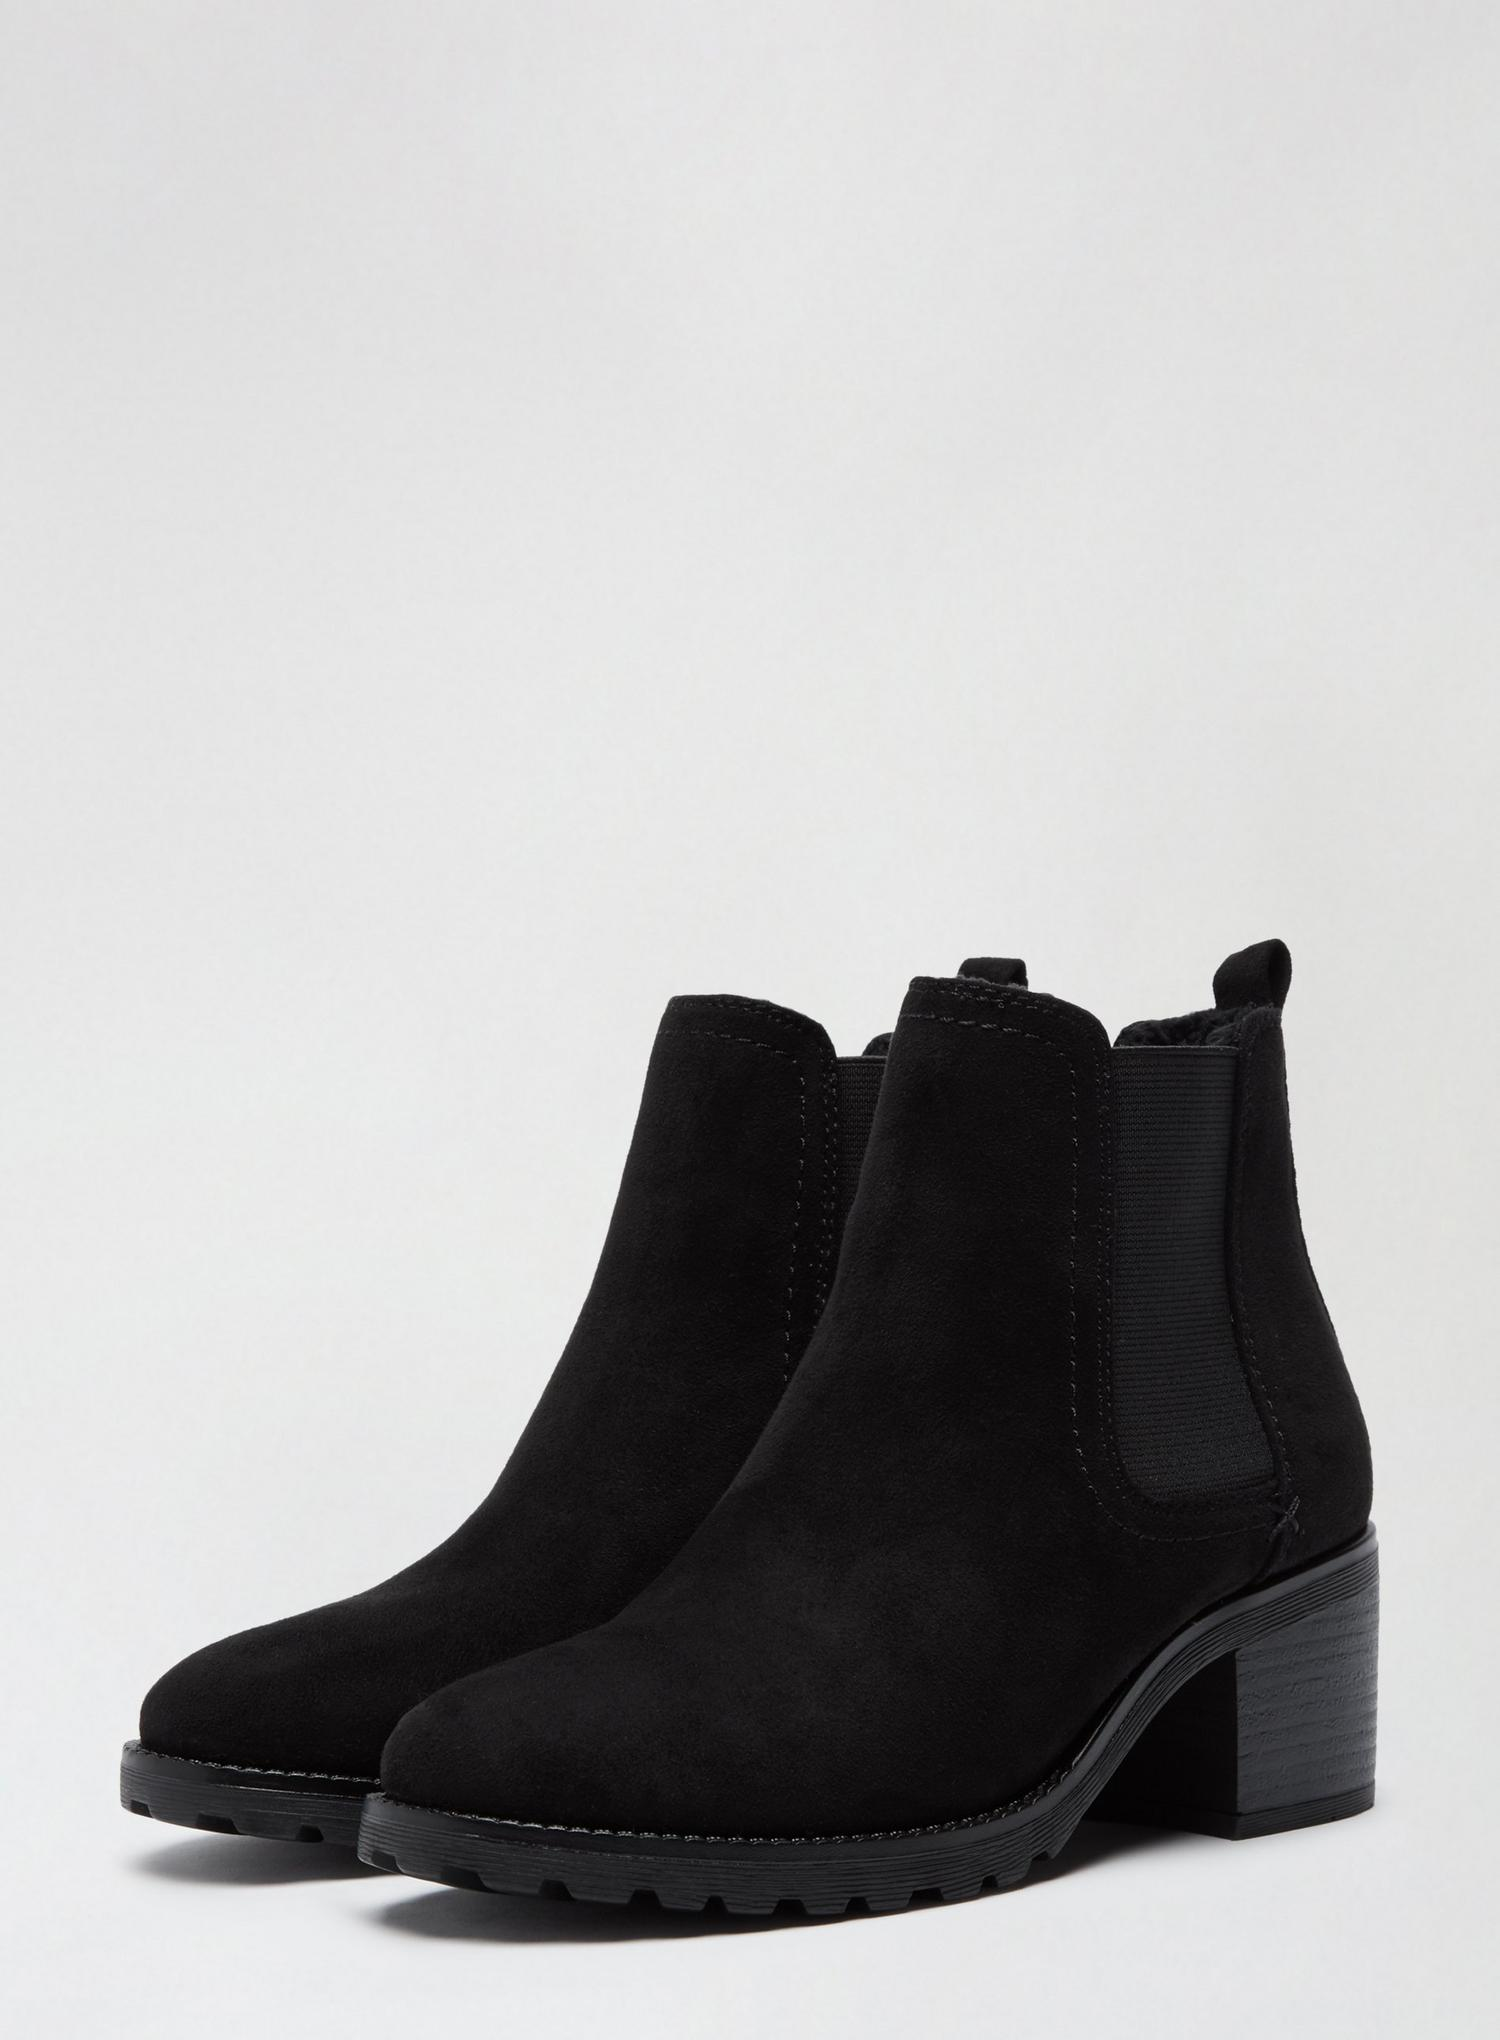 105 Black Ami Chelsea Boots image number 1